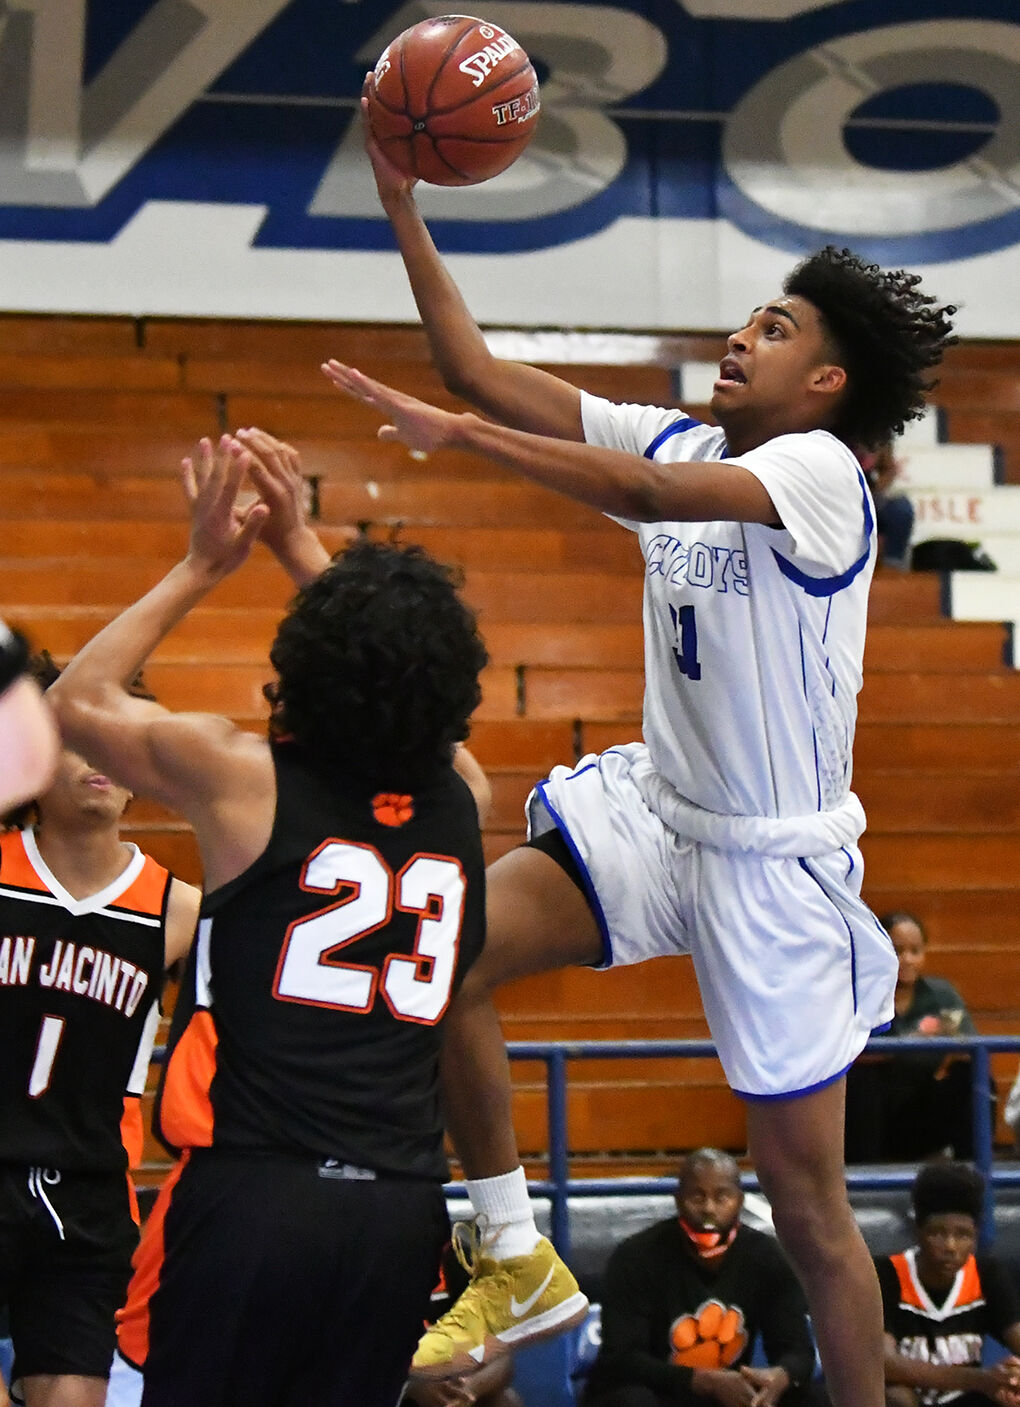 Chino High boys' basketball reaches first CIF-Southern Section quarterfinal since 1965